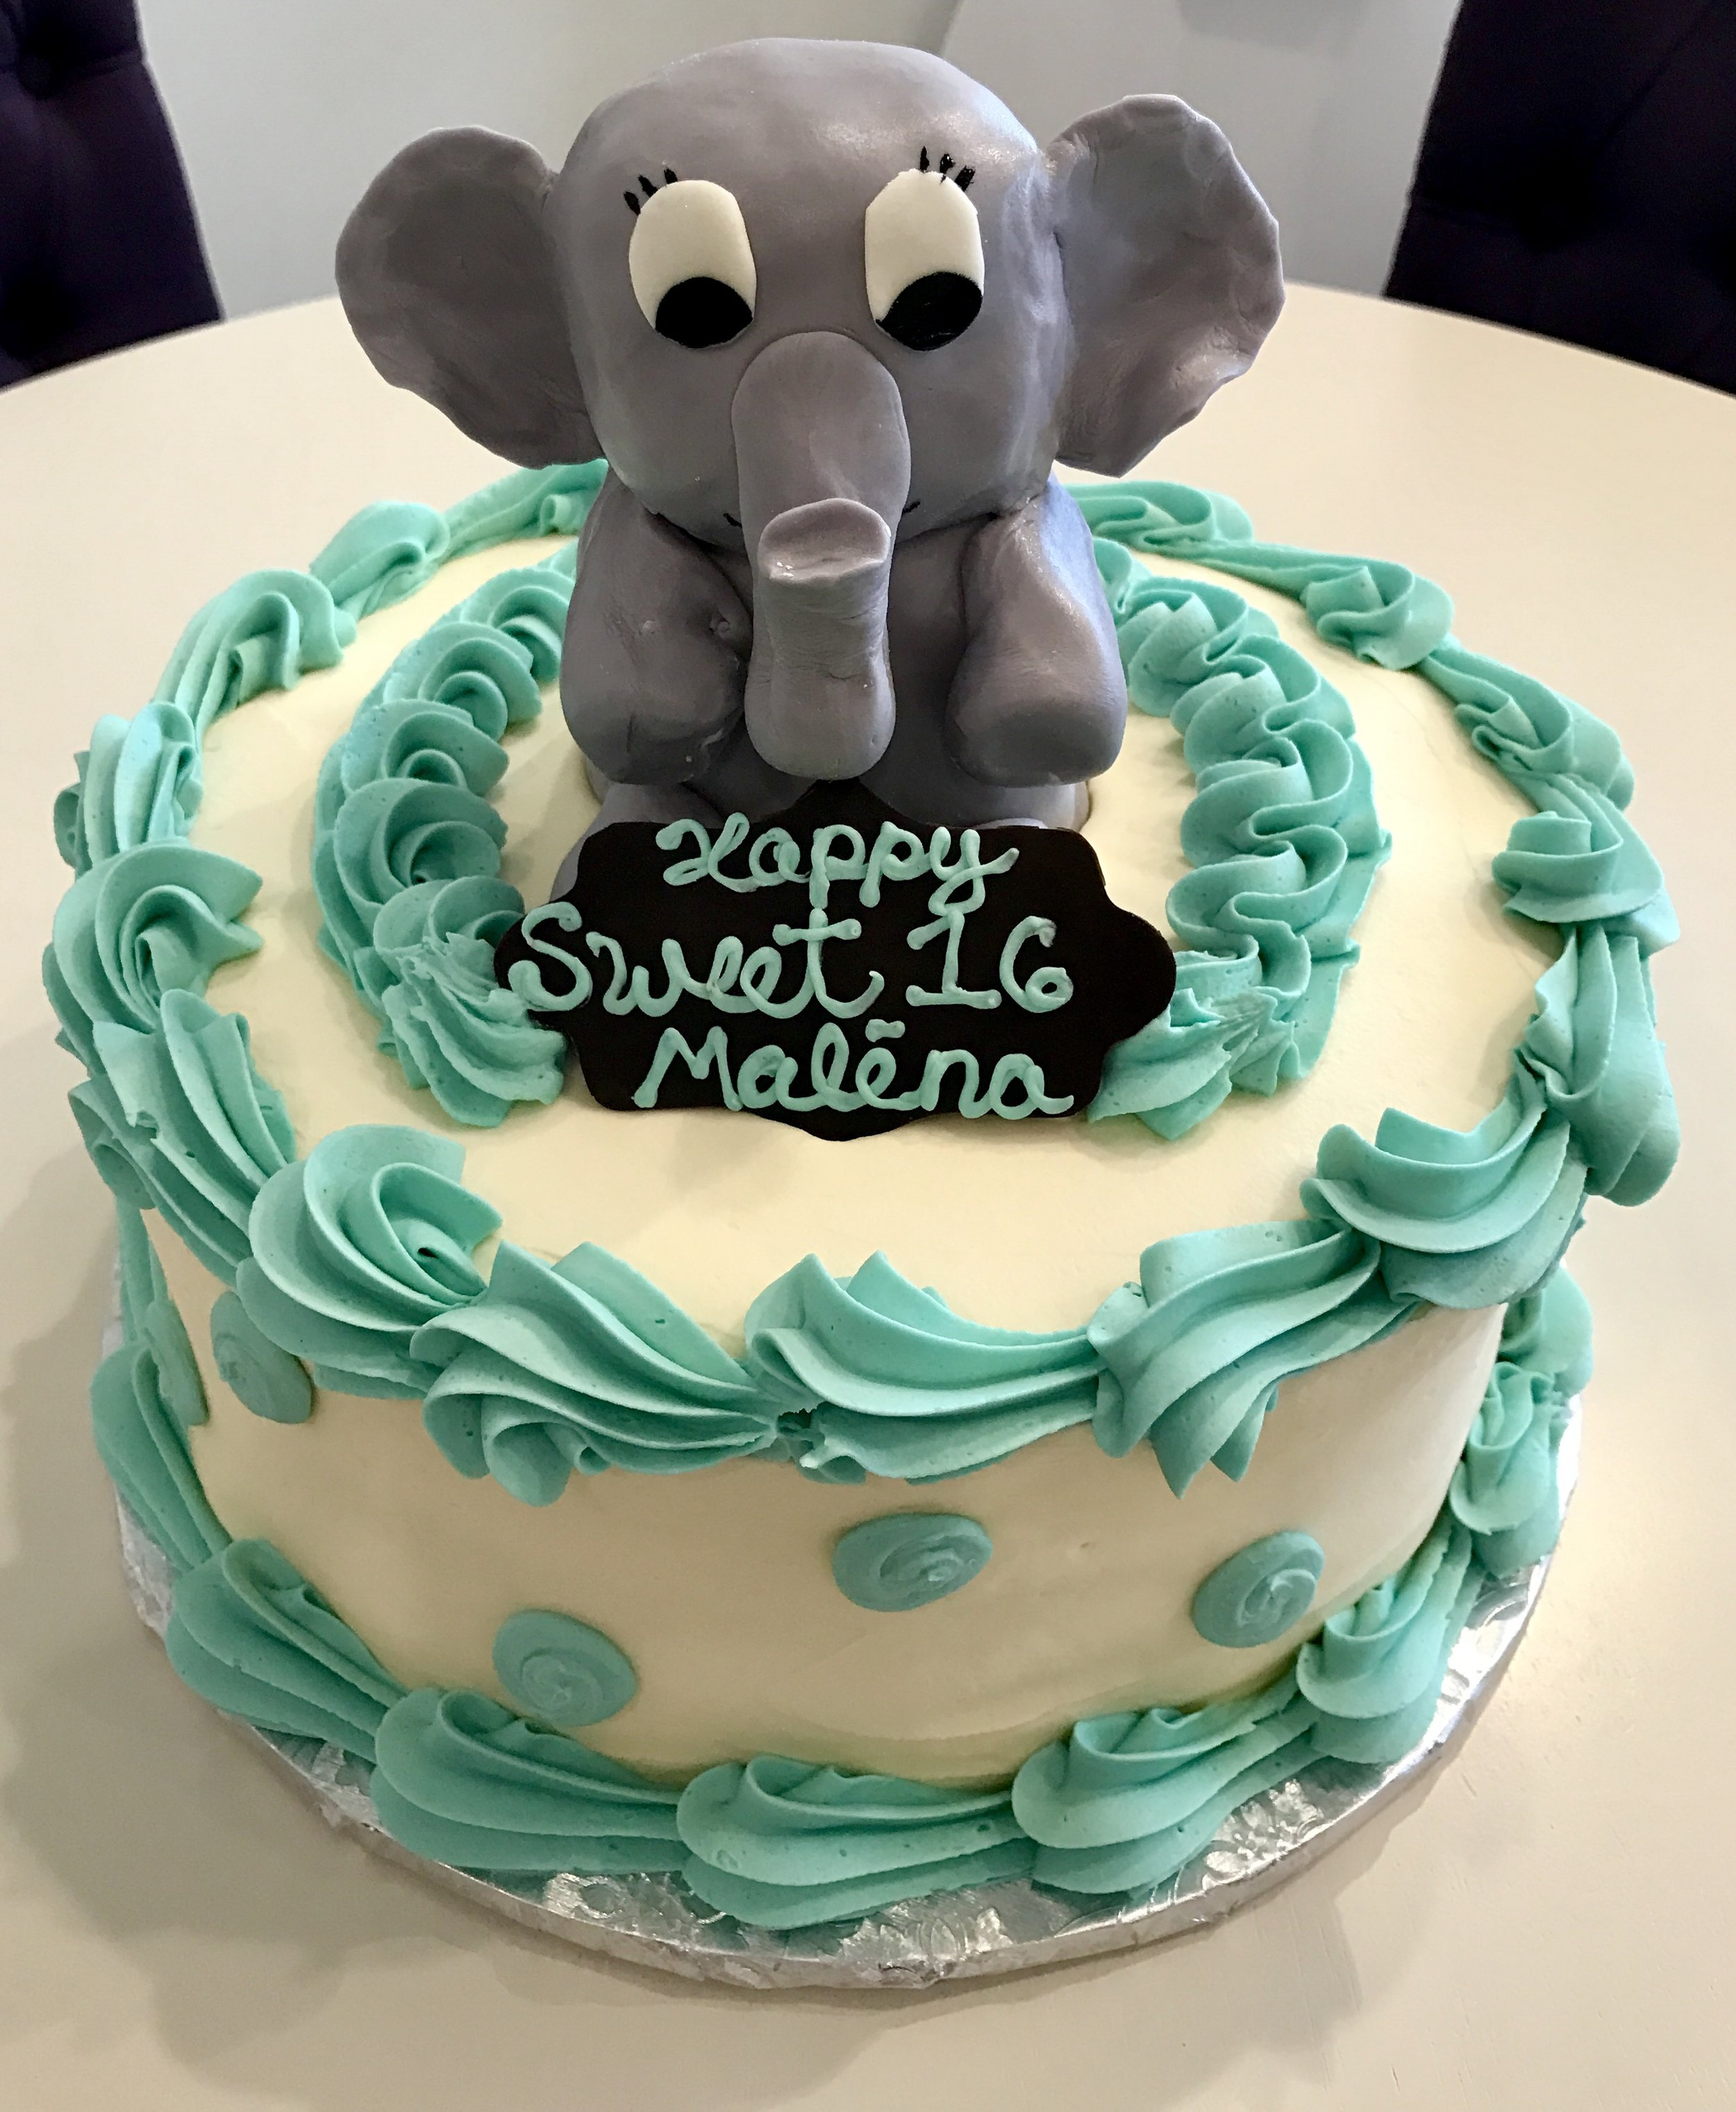 Birth16elephants.jpg